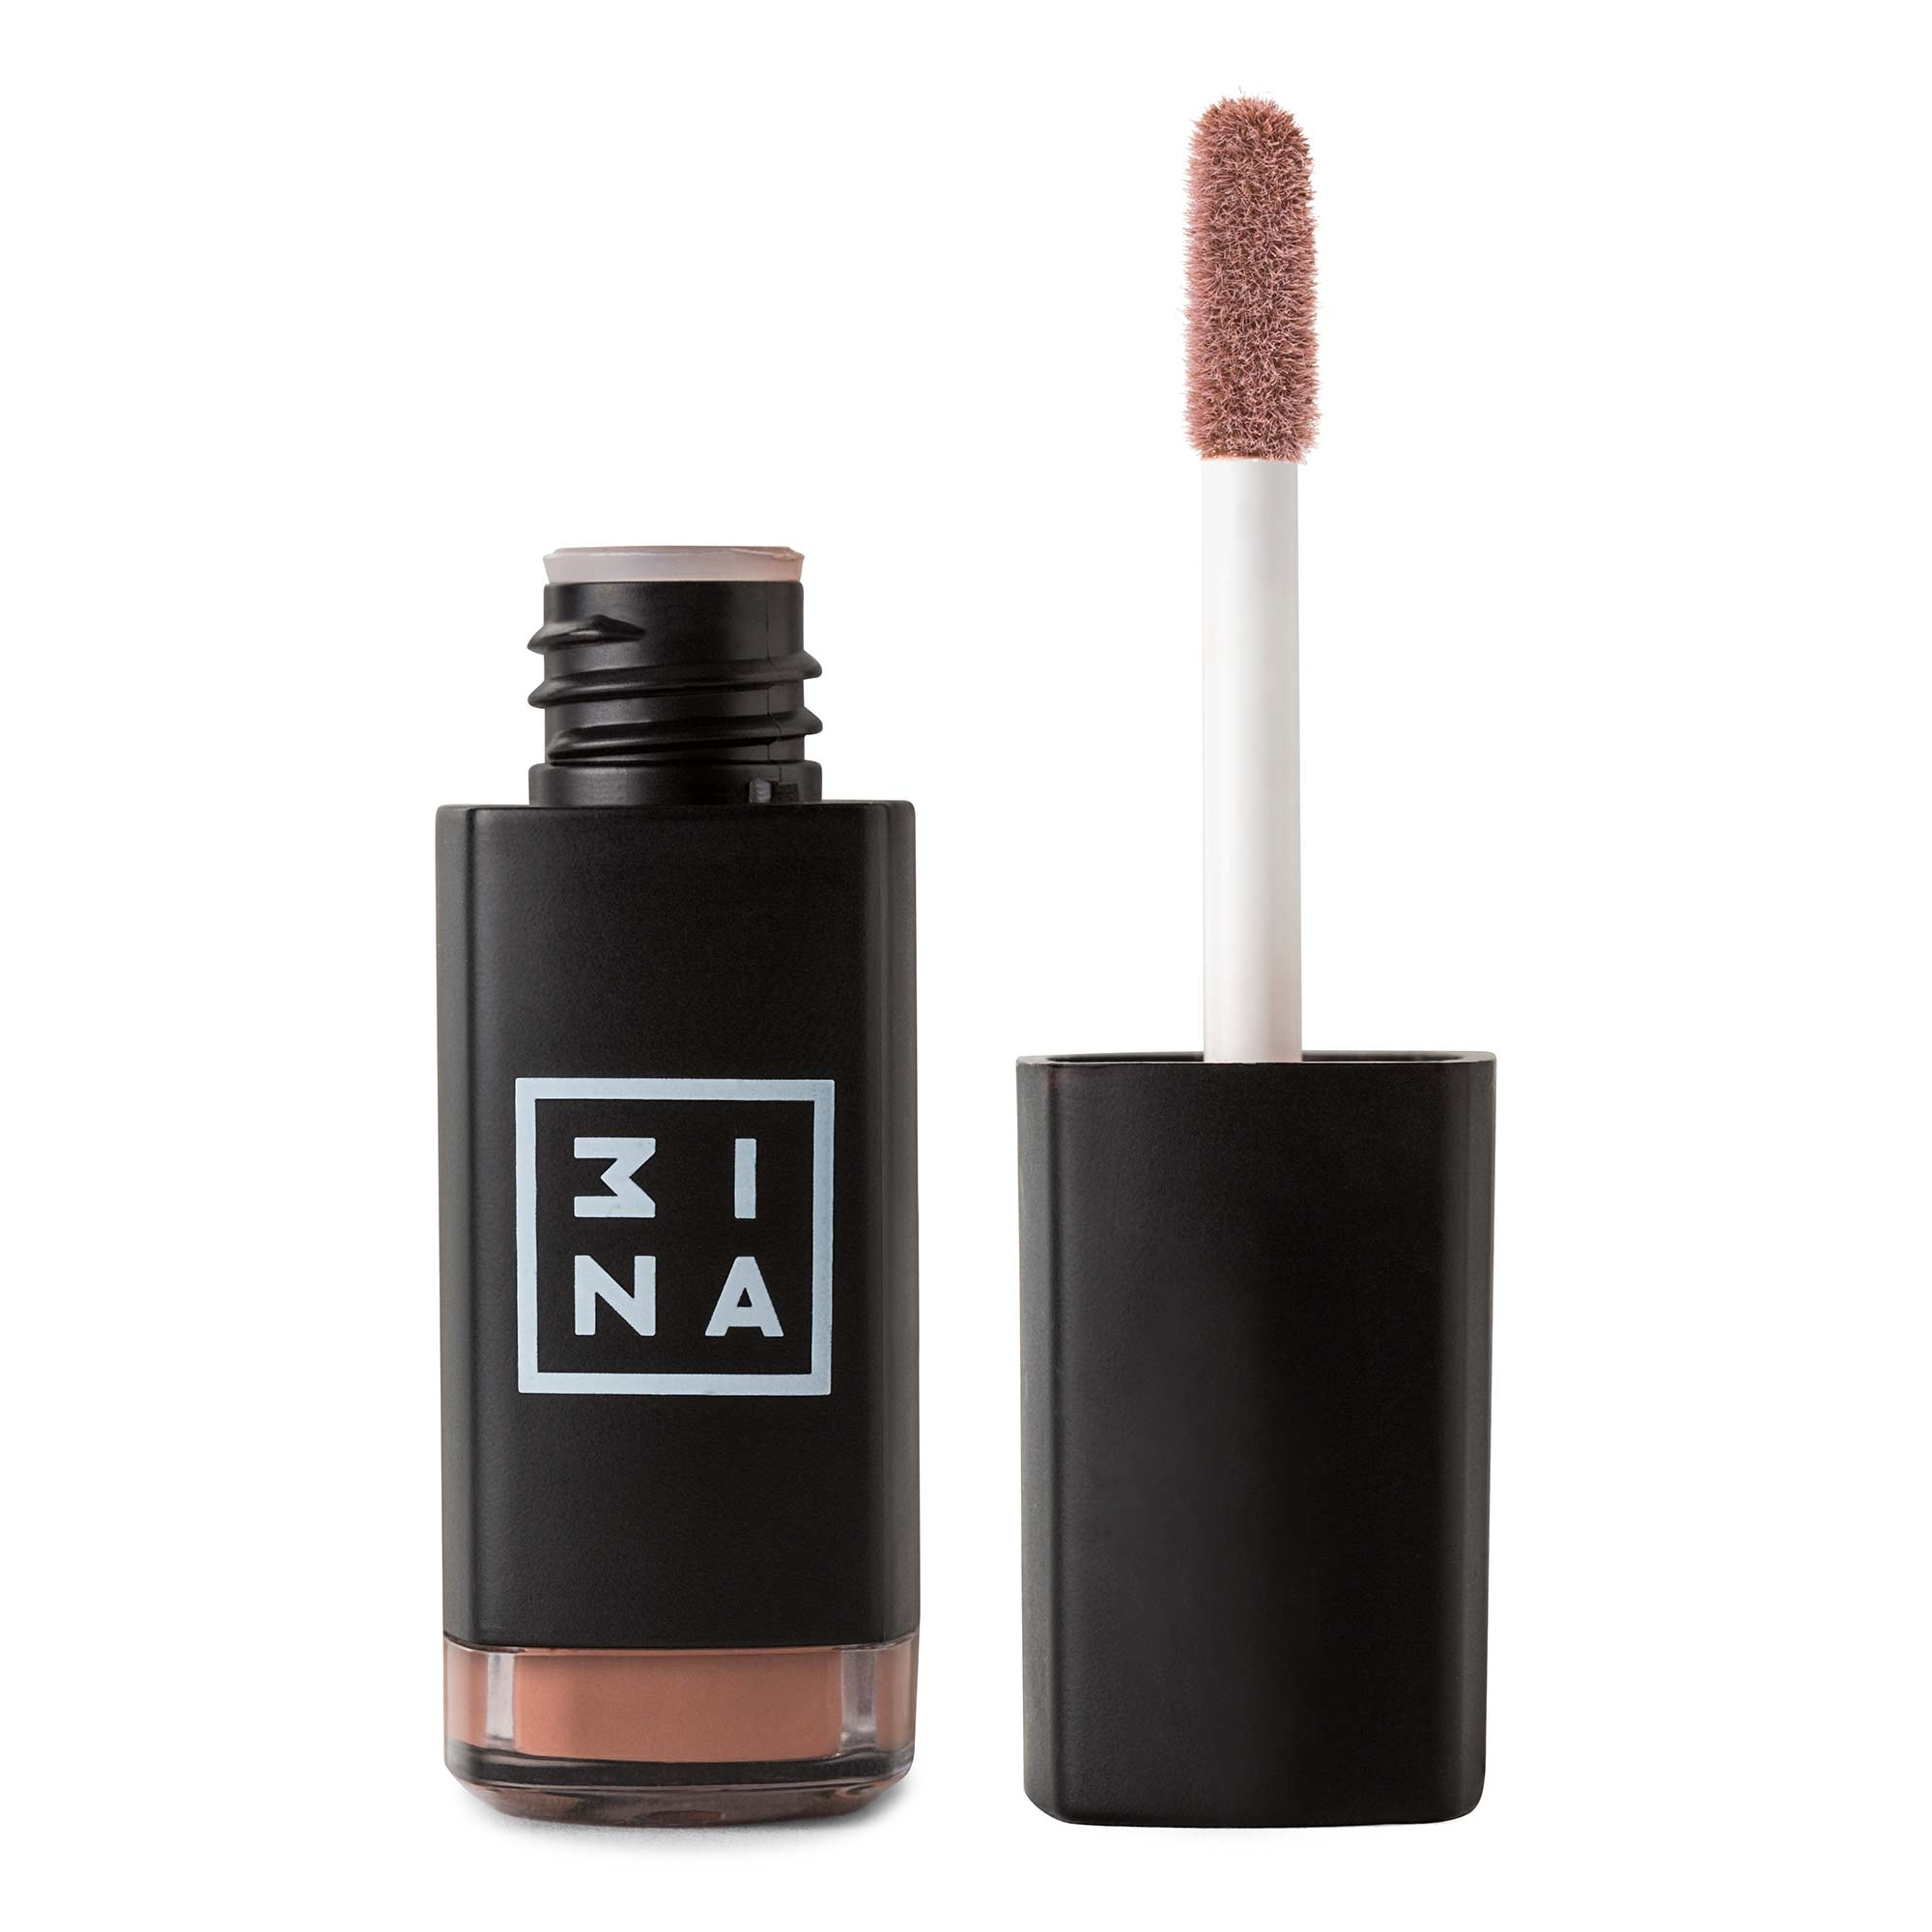 3INA Makeup | The Longwear Lipstick 516 Brown